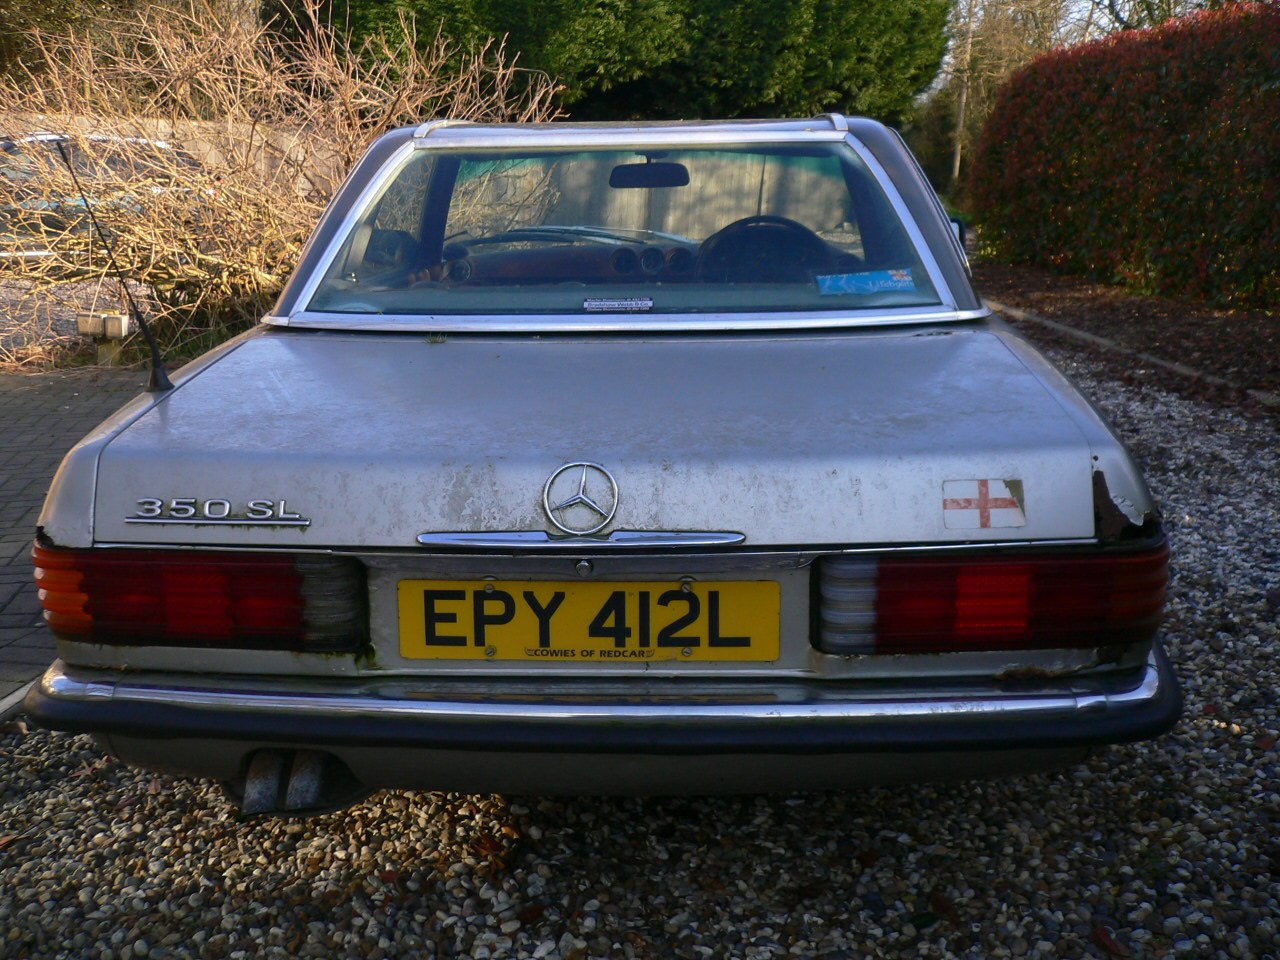 1973 mercedes sl 350 spares or repair  For Sale (picture 4 of 5)